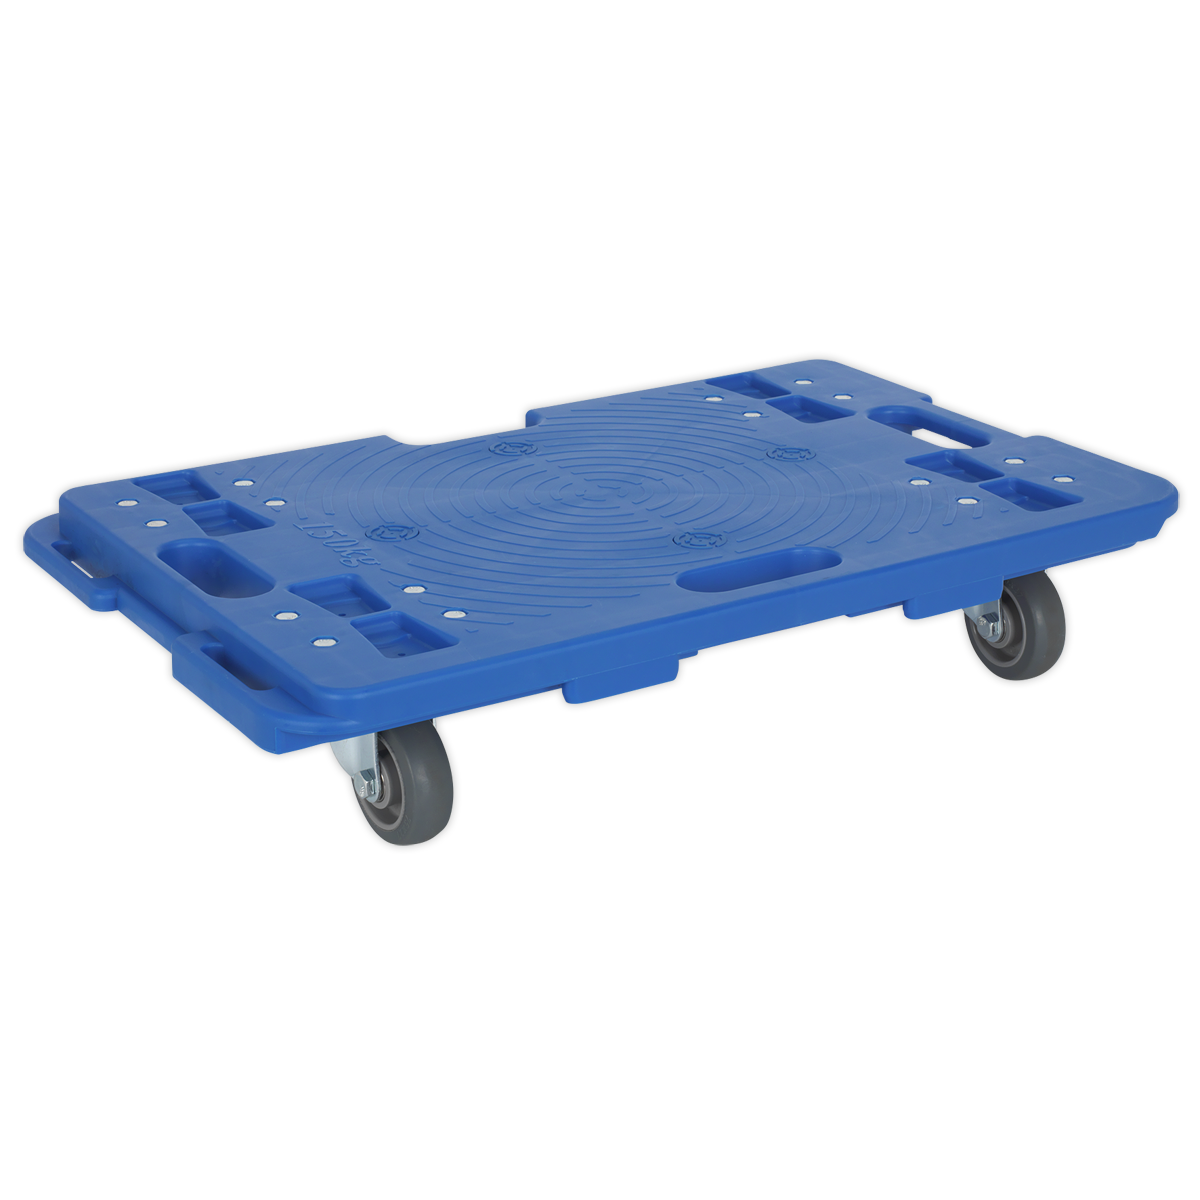 Sealey Mpsd1 Quick Lift Stand//Moving Dolly 135Kg